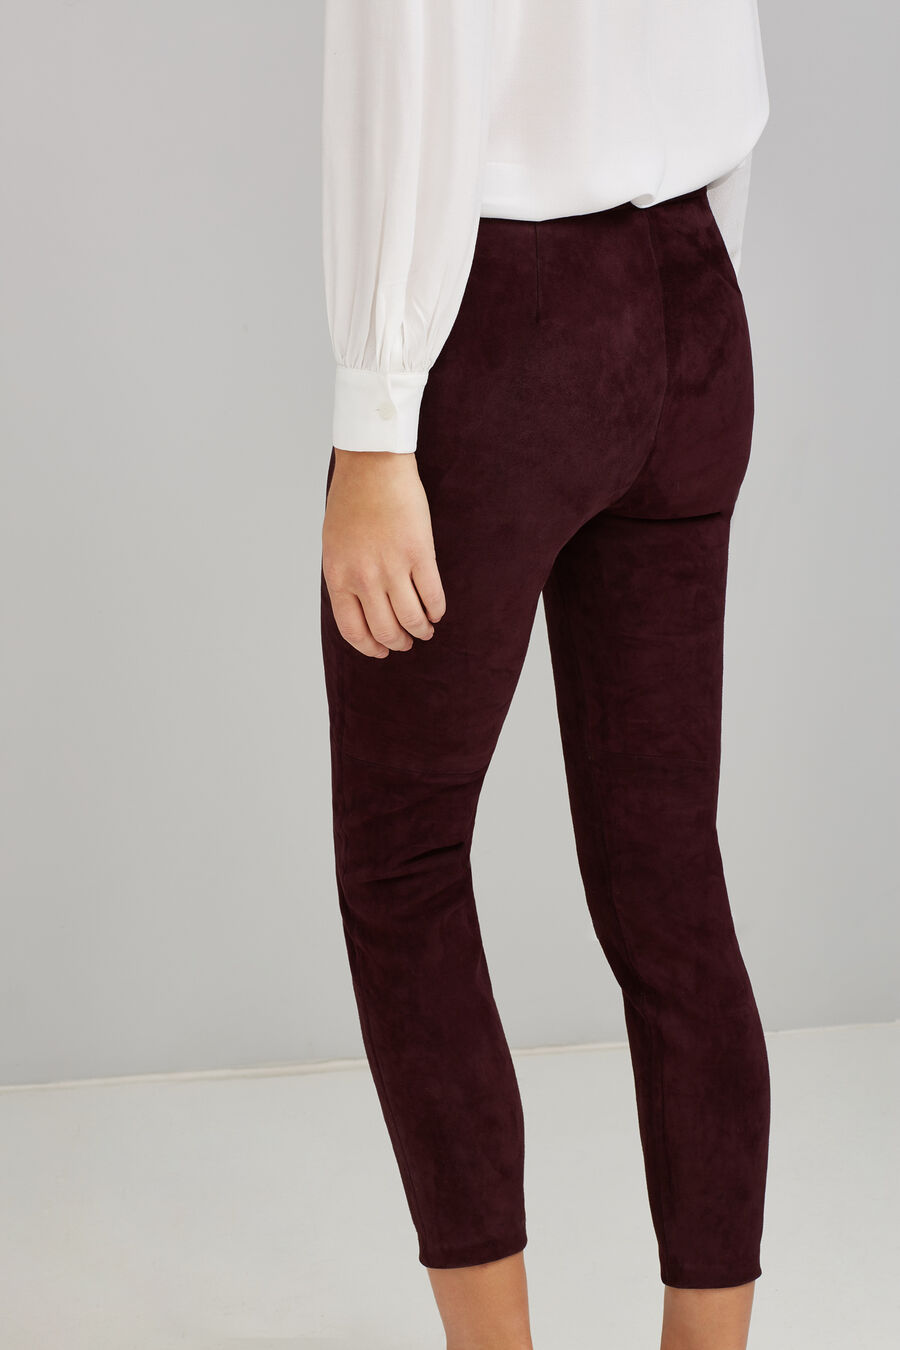 Velvet legging trousers